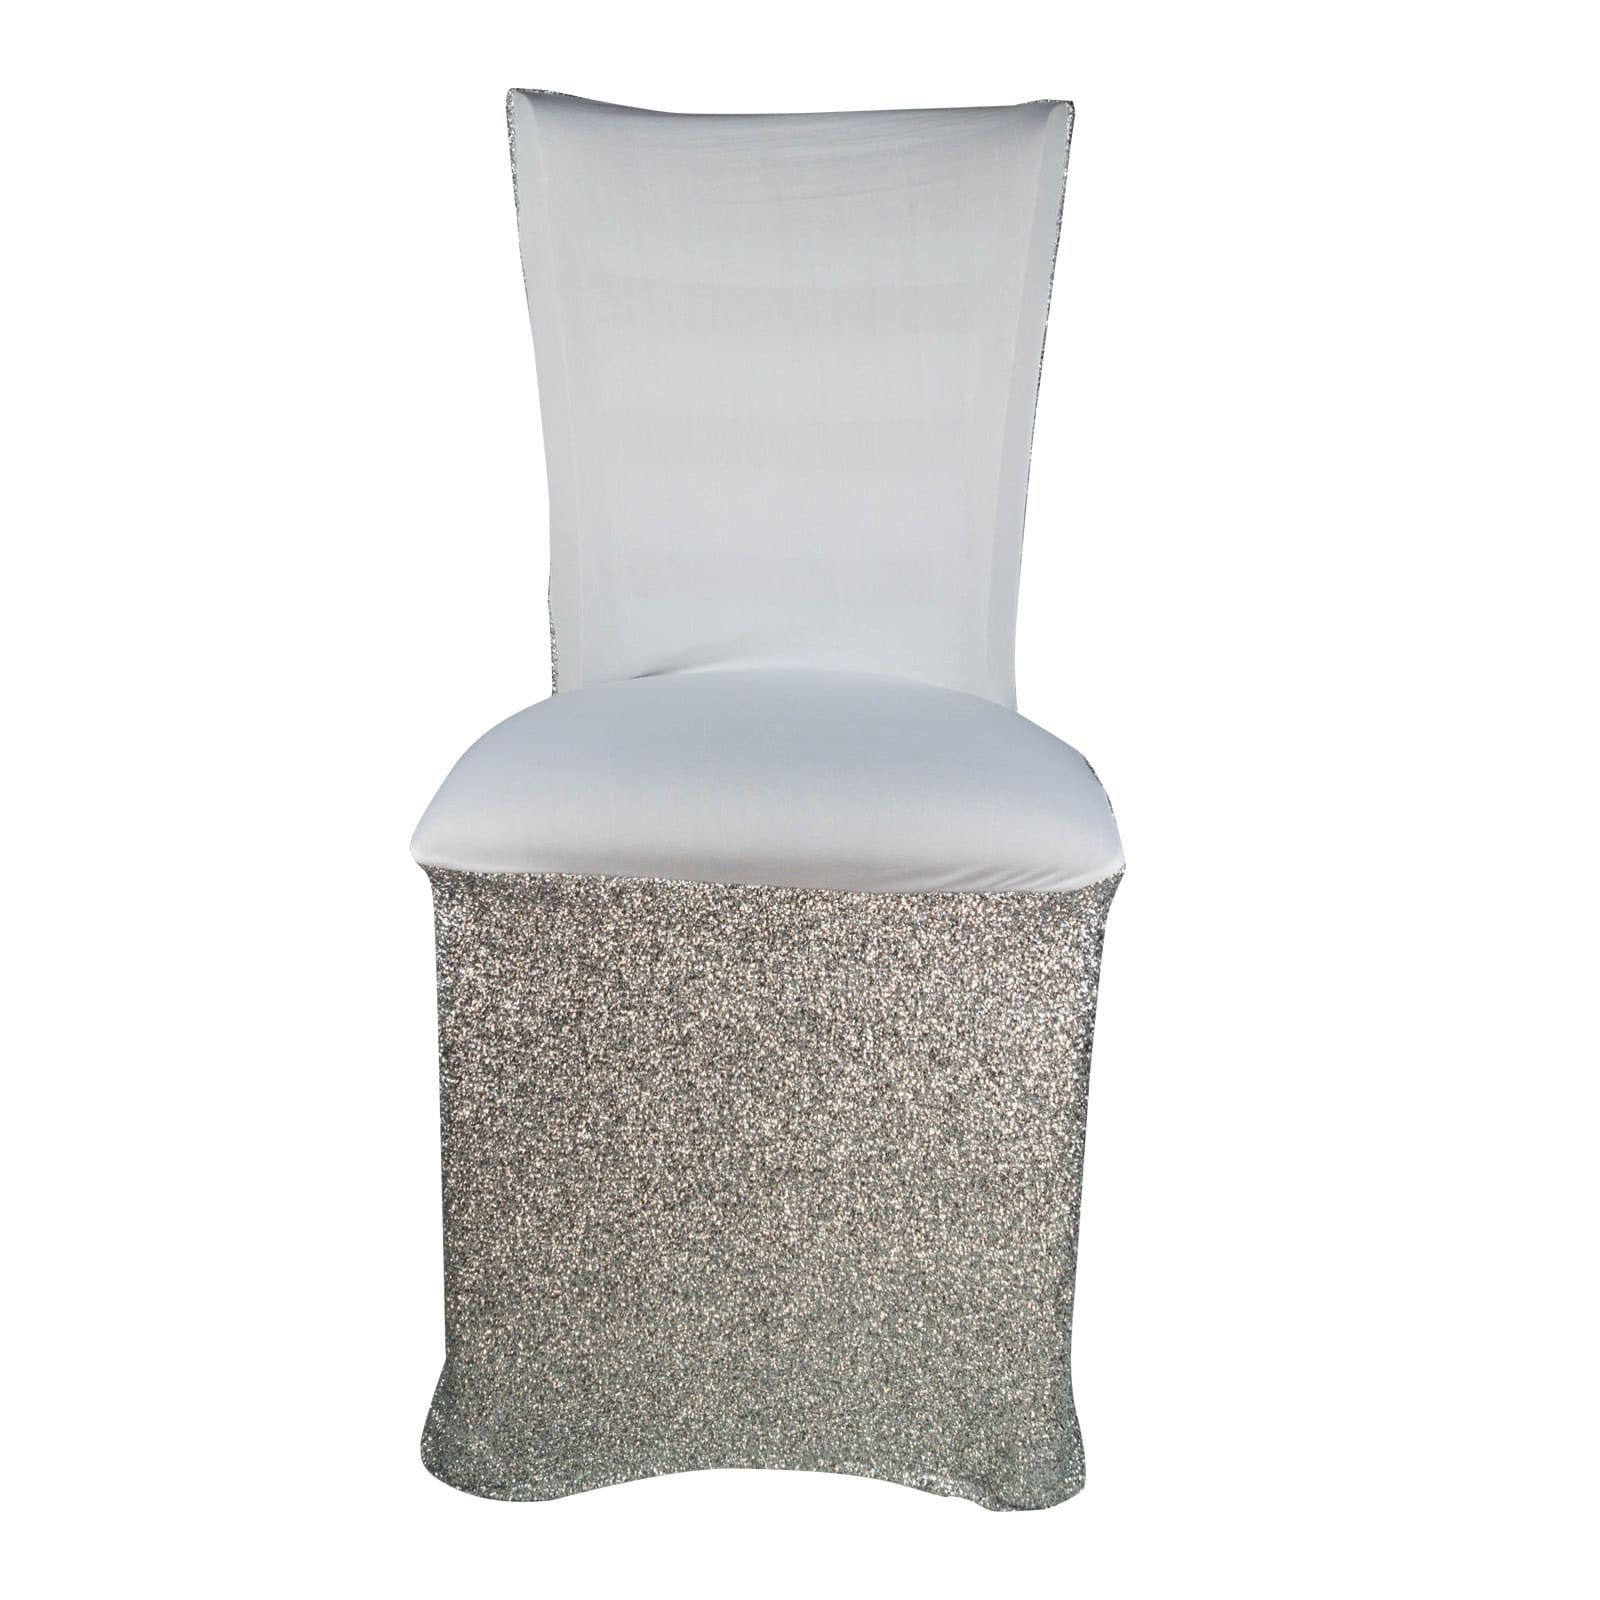 Sparkle Spandex Chair Covers  Silver or Gold